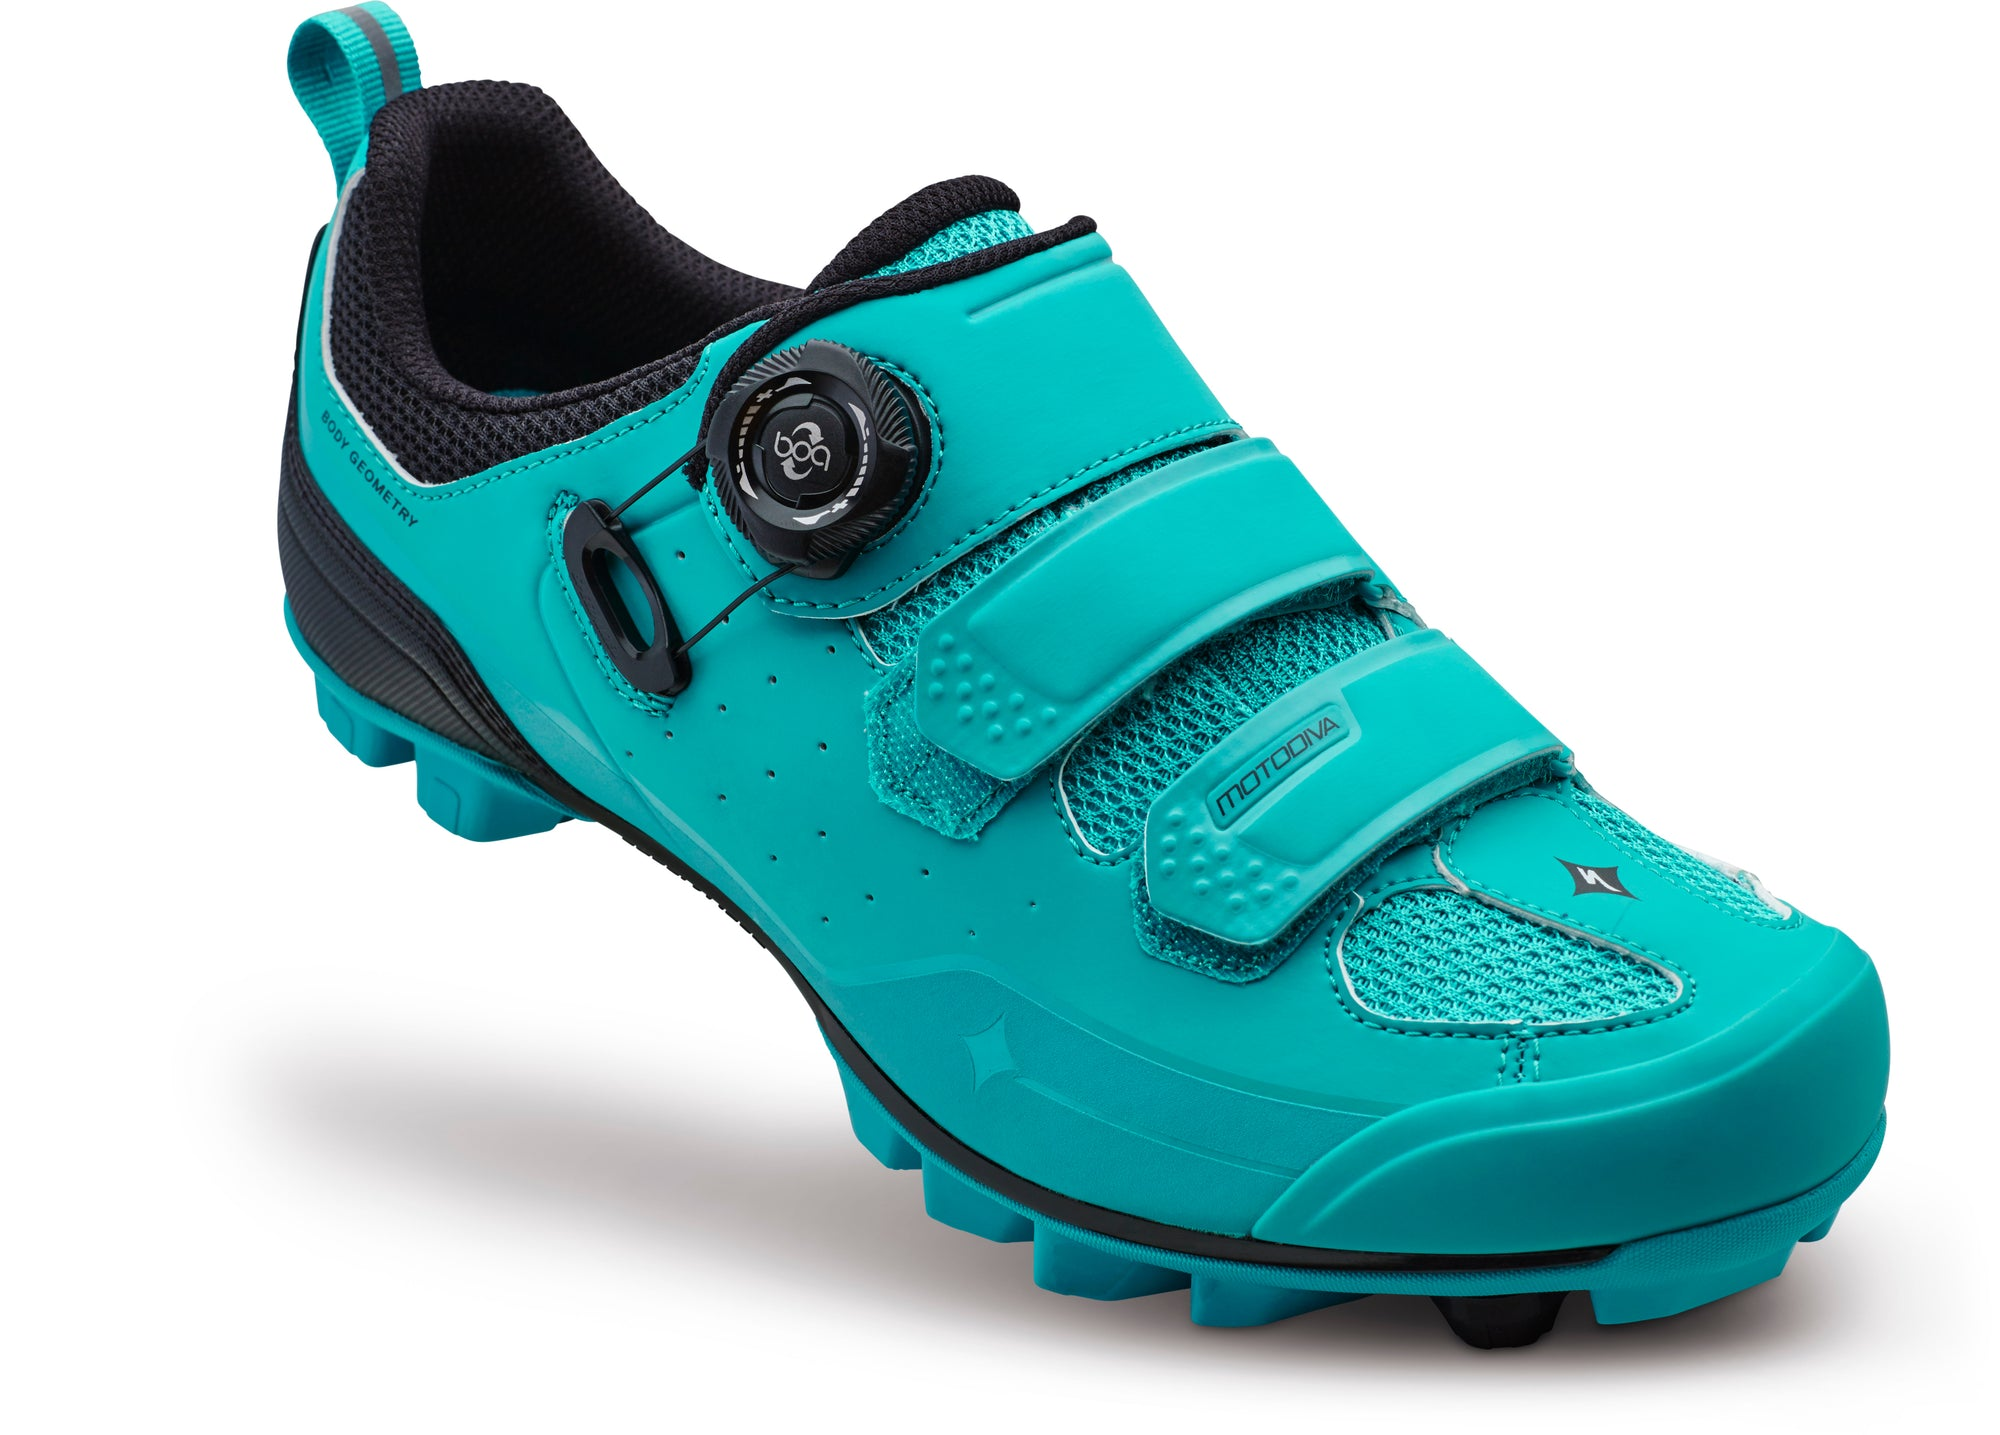 Women's Motodiva Mountain Bike Shoes